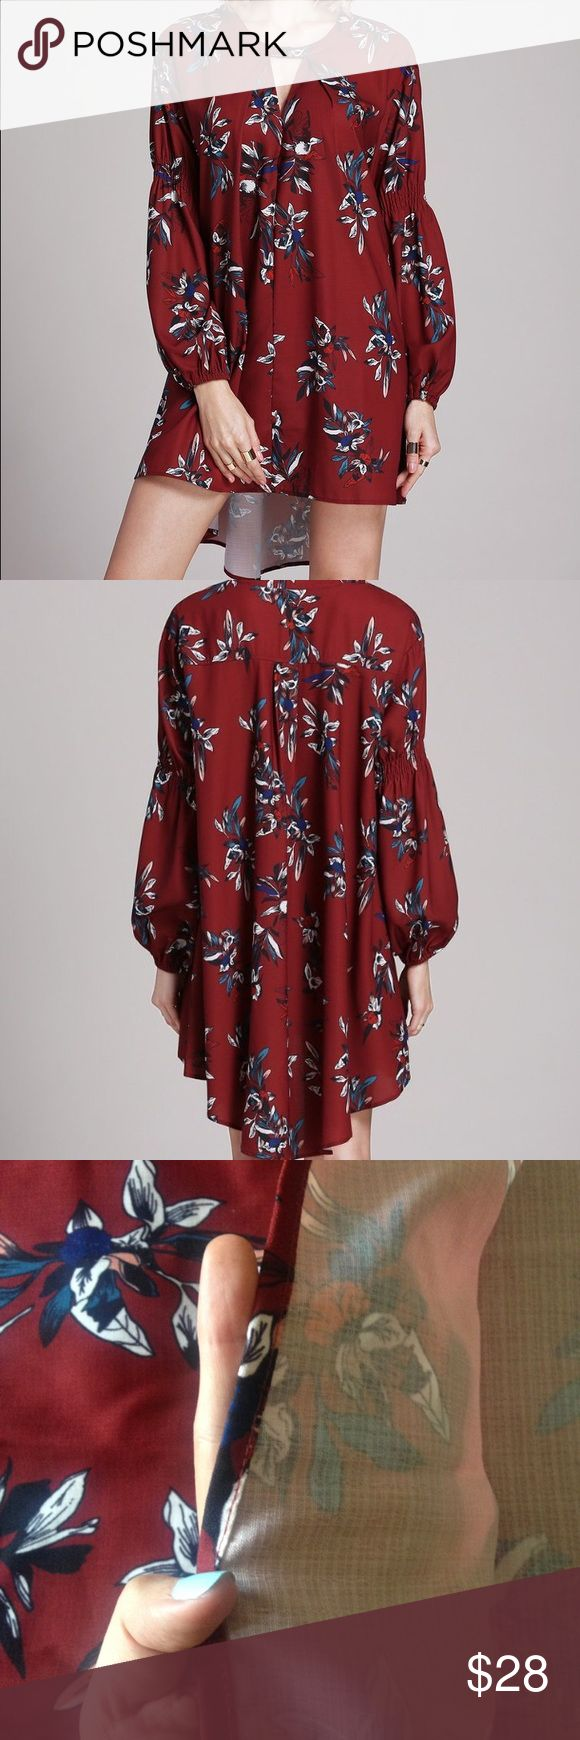 NWOT Deep Red Floral Dress with Sleeves New without tags, flowly deep red / maroon floral dress with sleeves. Features a longer hem in the back and ruched sleeves. Fun key hole cut out in front as well! Never been worn. No Brand. Dresses High Low